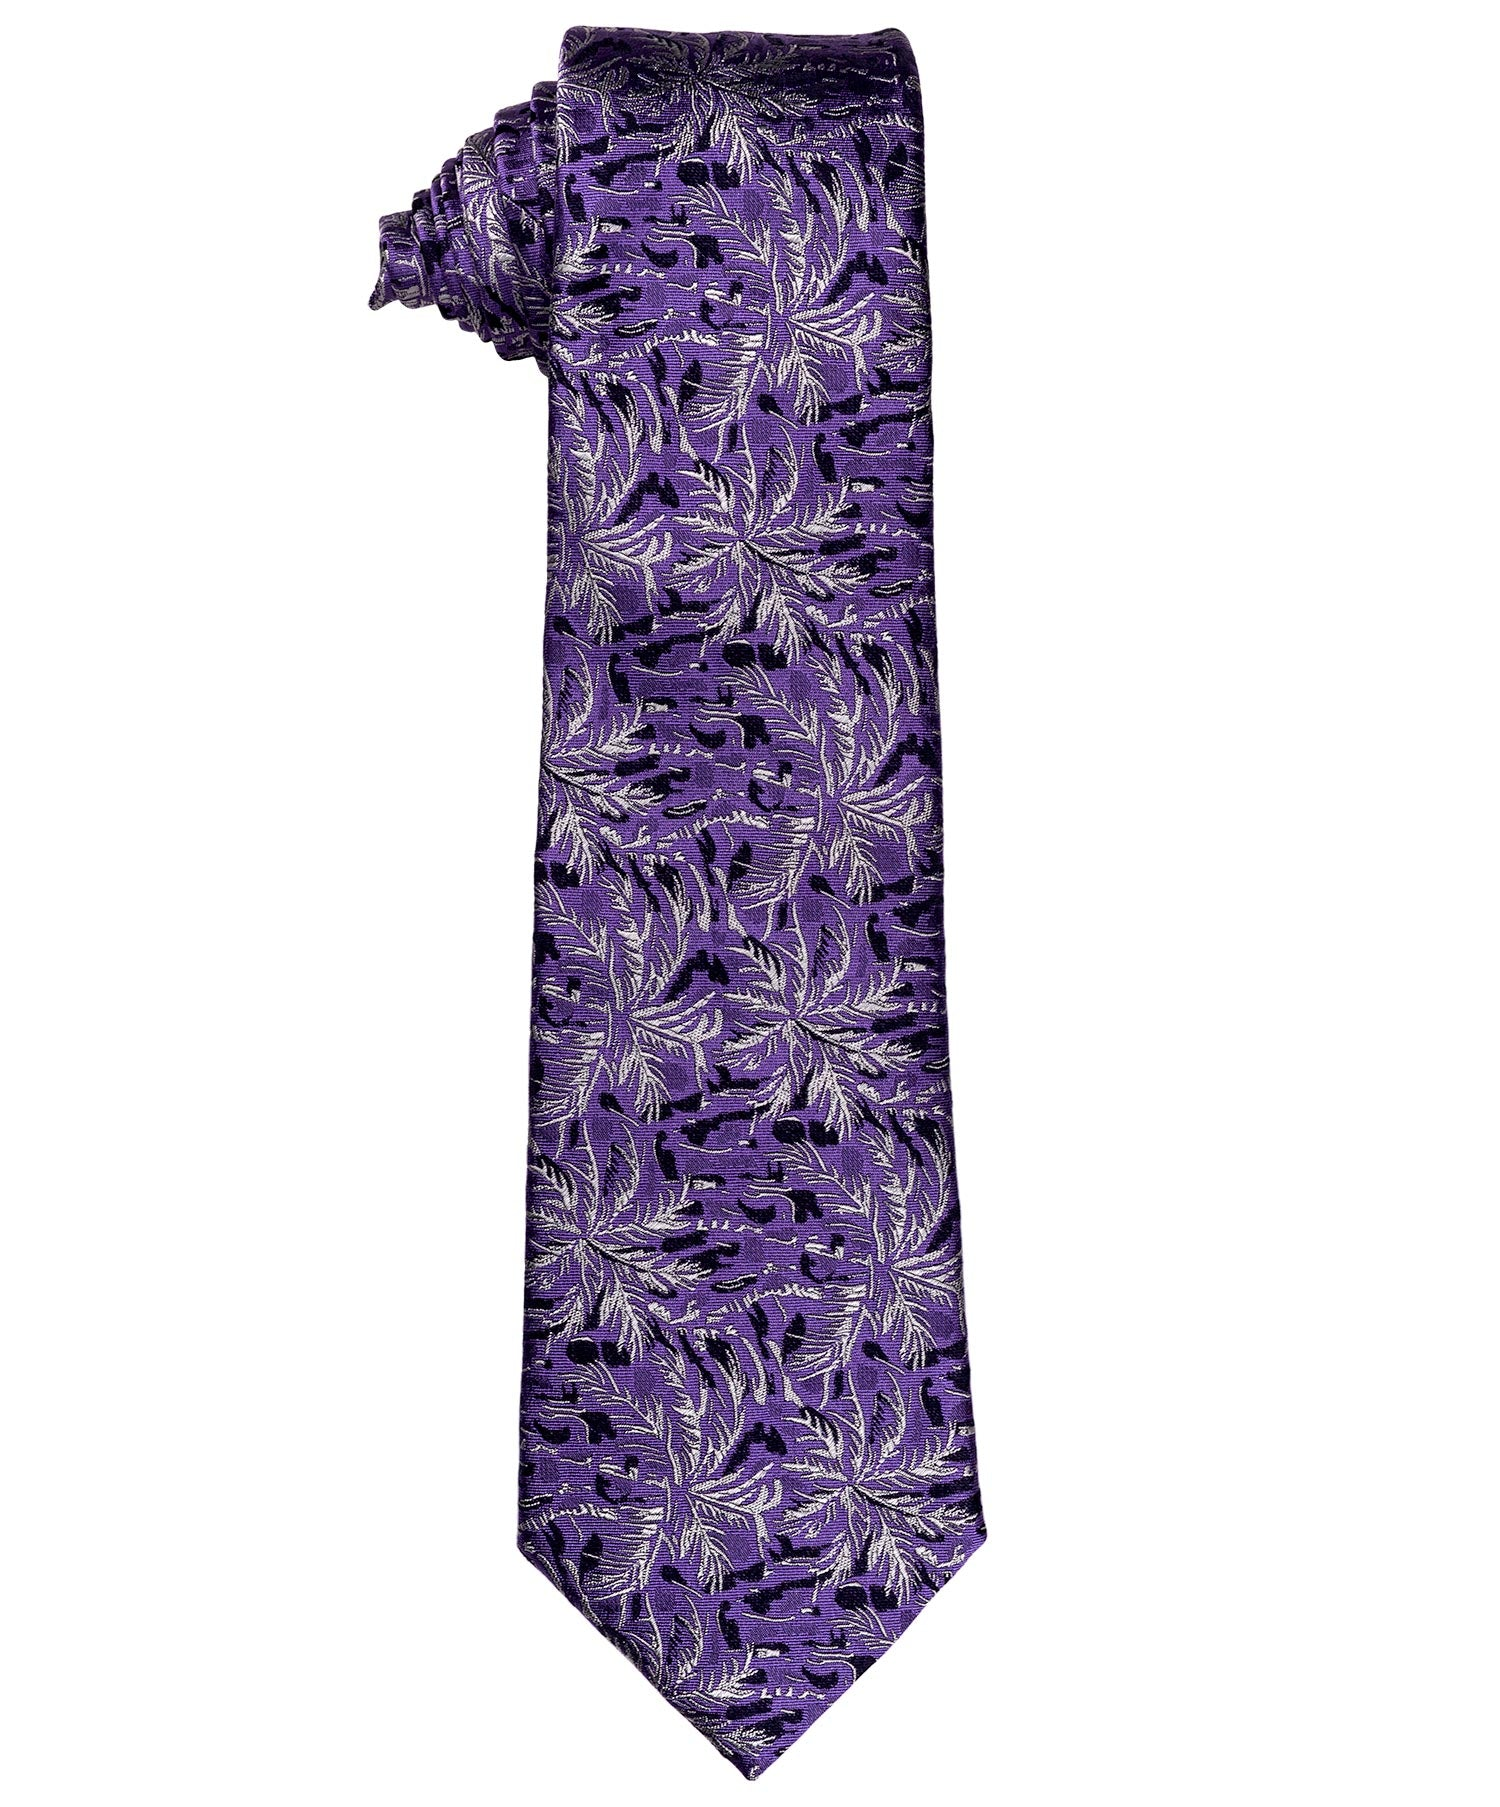 8.0cm Purple/Mauve/Pearl Abstracted Floral Woven Tie